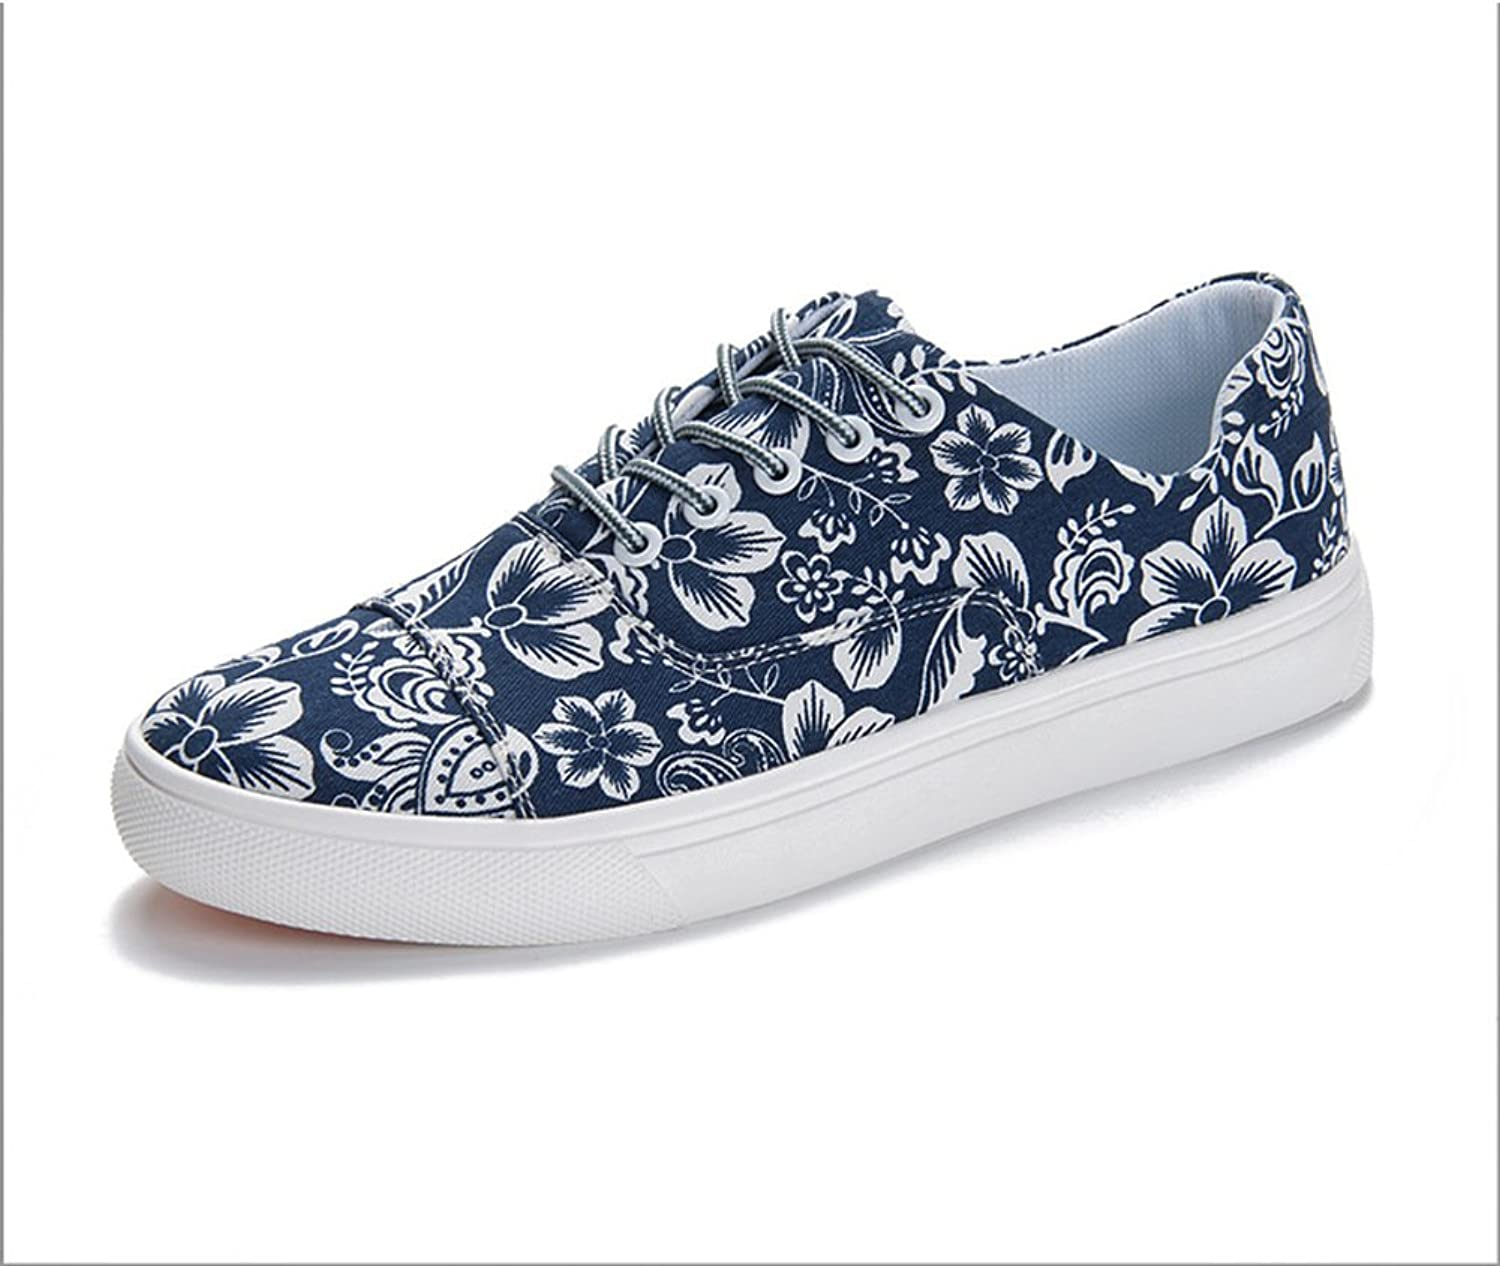 WLJSLLZYQ A Men's shoes Student Canvas shoes Summer Low shoes Breathable Casual shoes Flower Cloth shoes